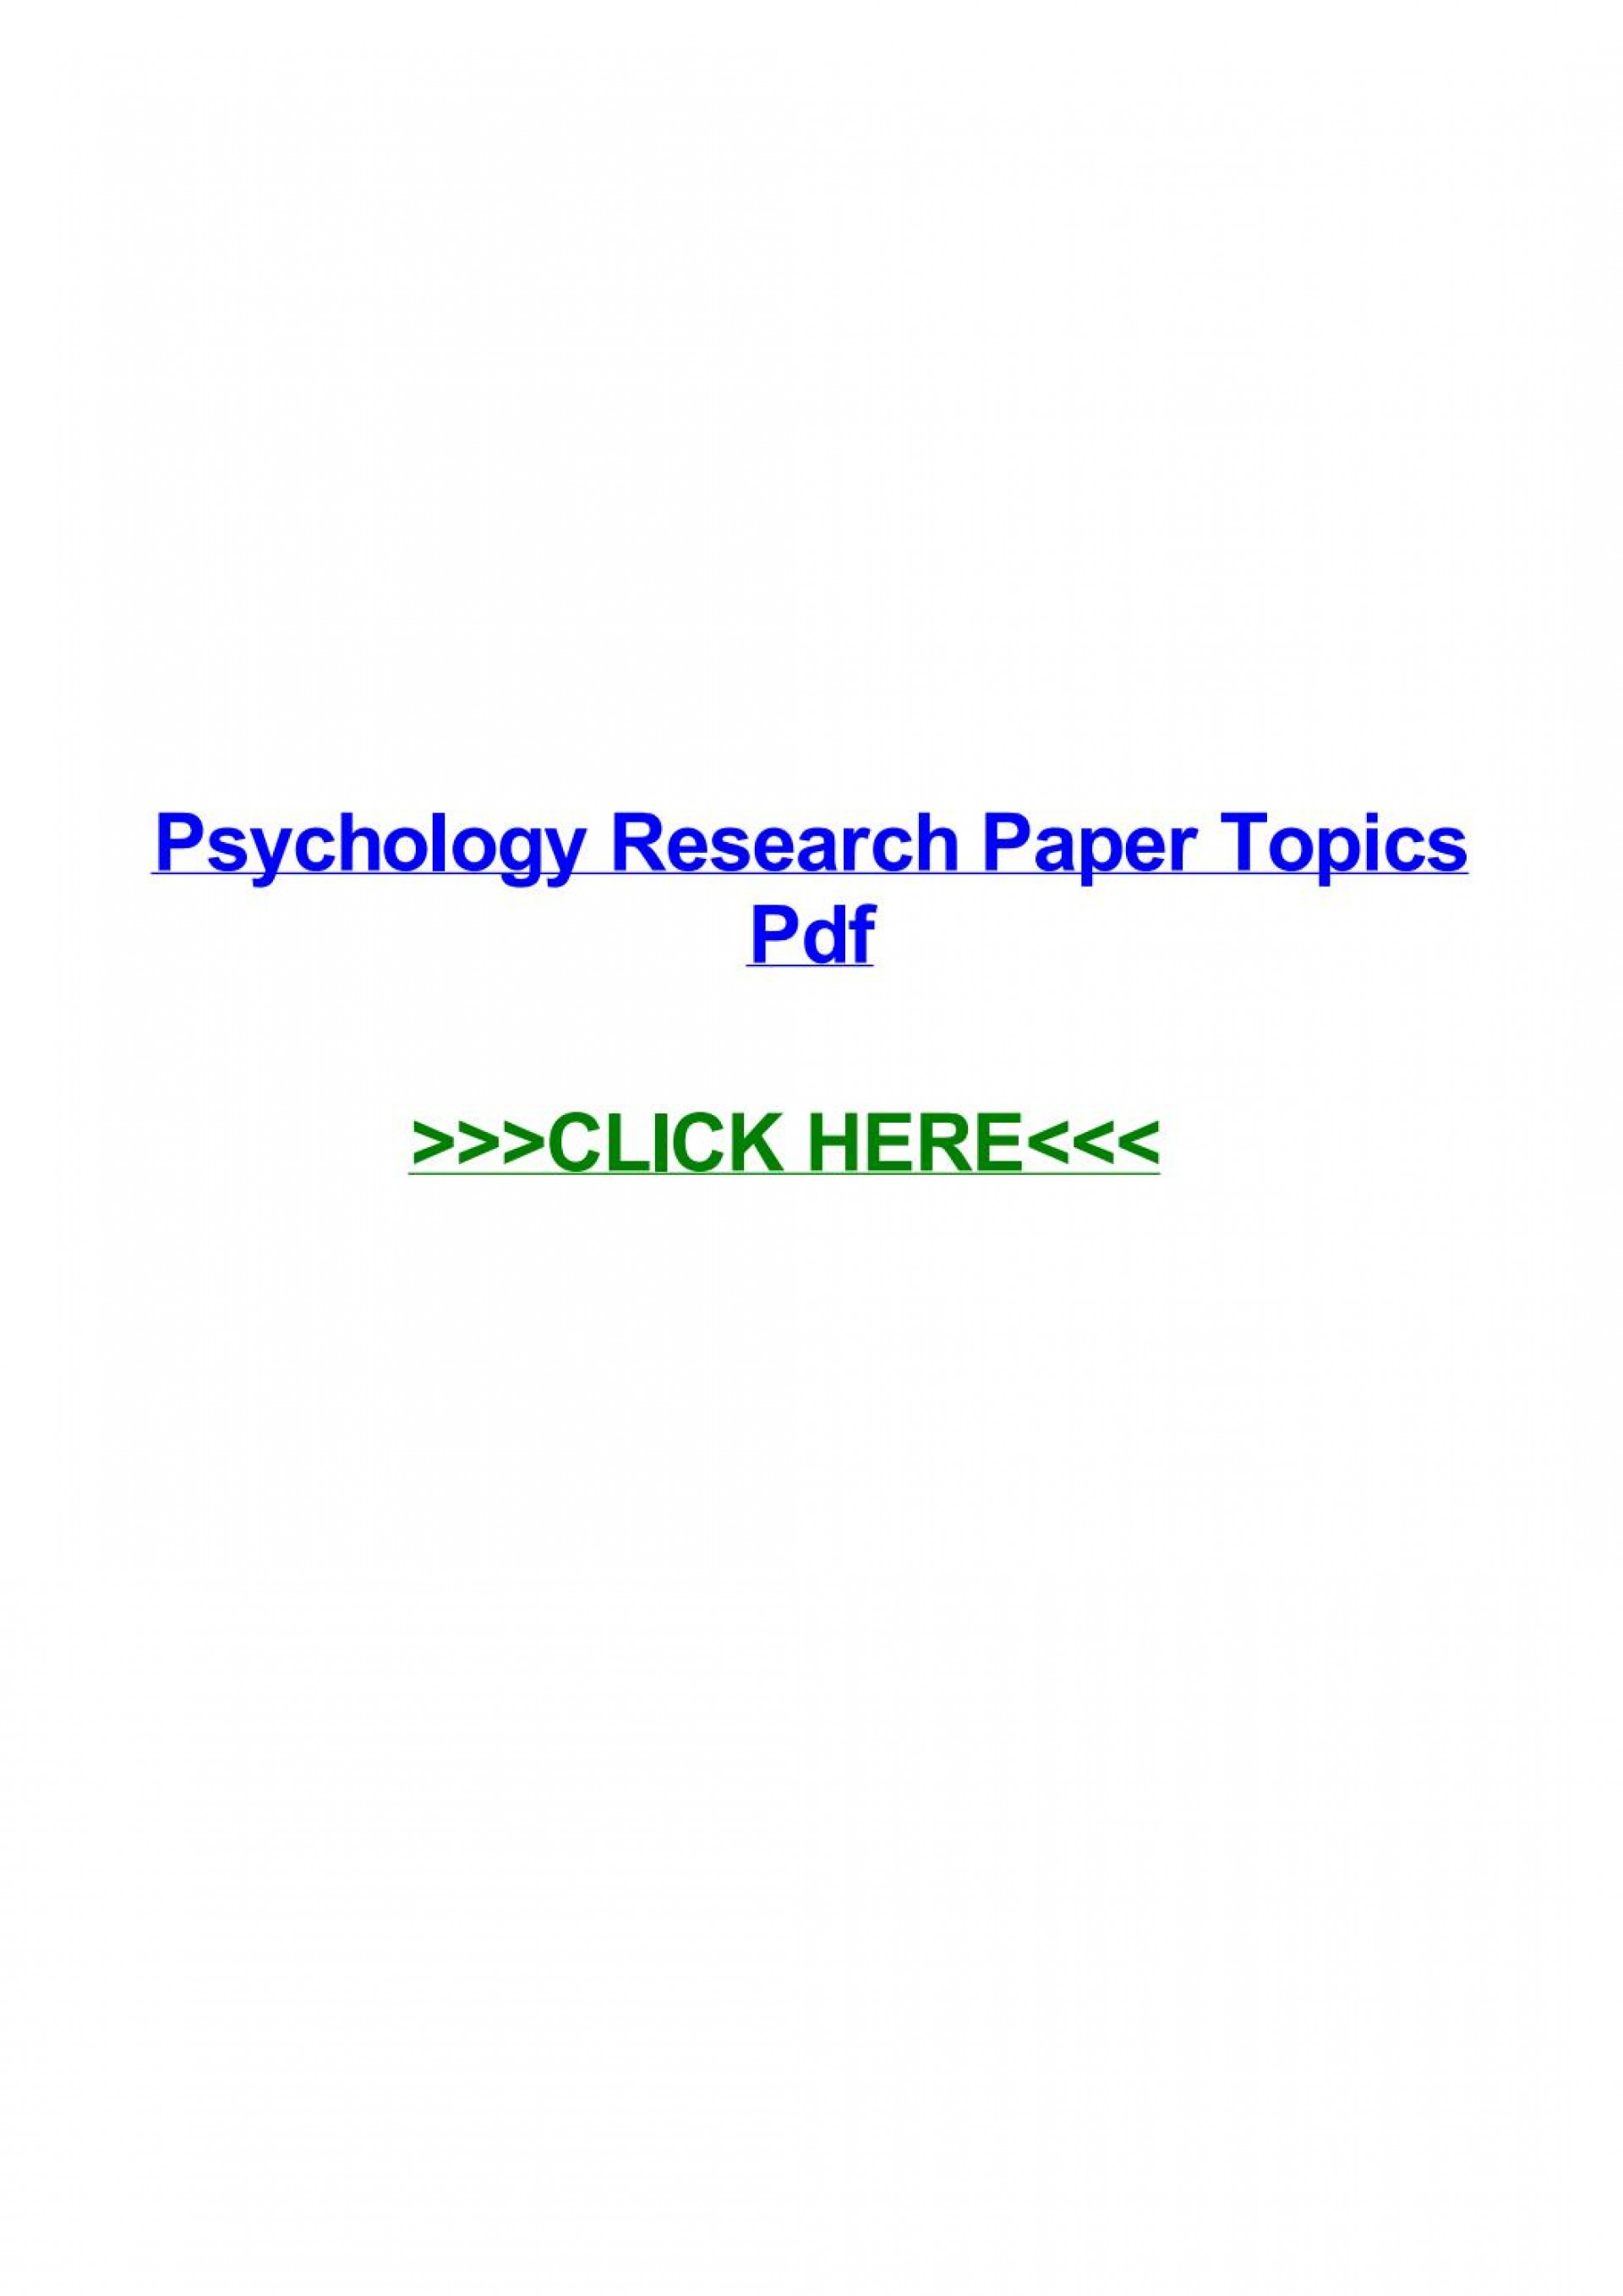 017 Page 1 Research Paper Psychology Striking Topics For High School Students Reddit 1920